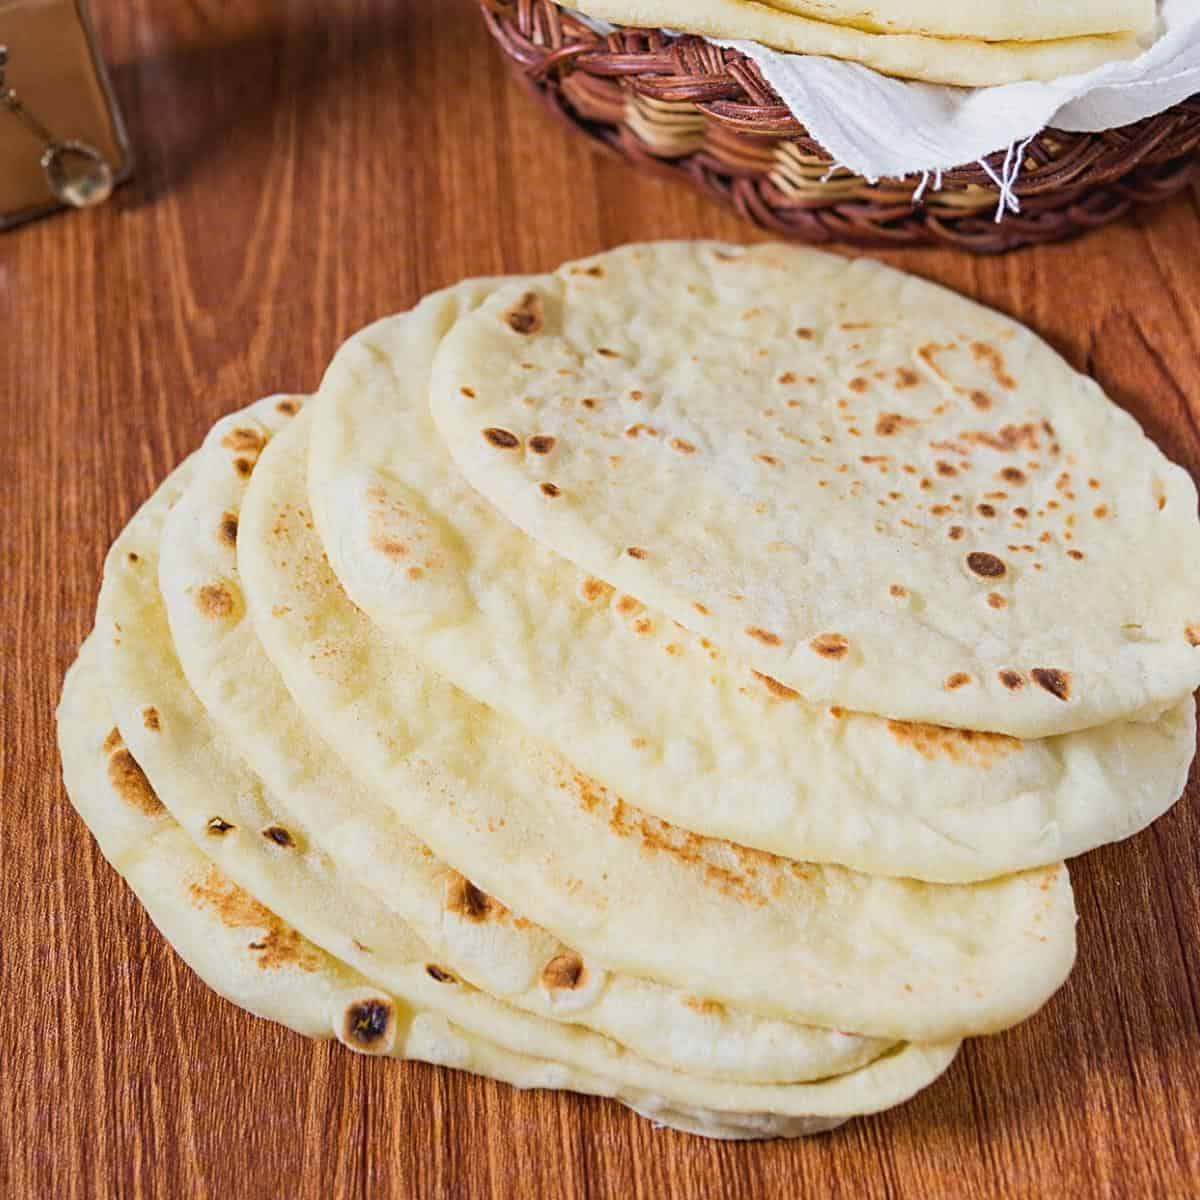 Homemade naan on a table.